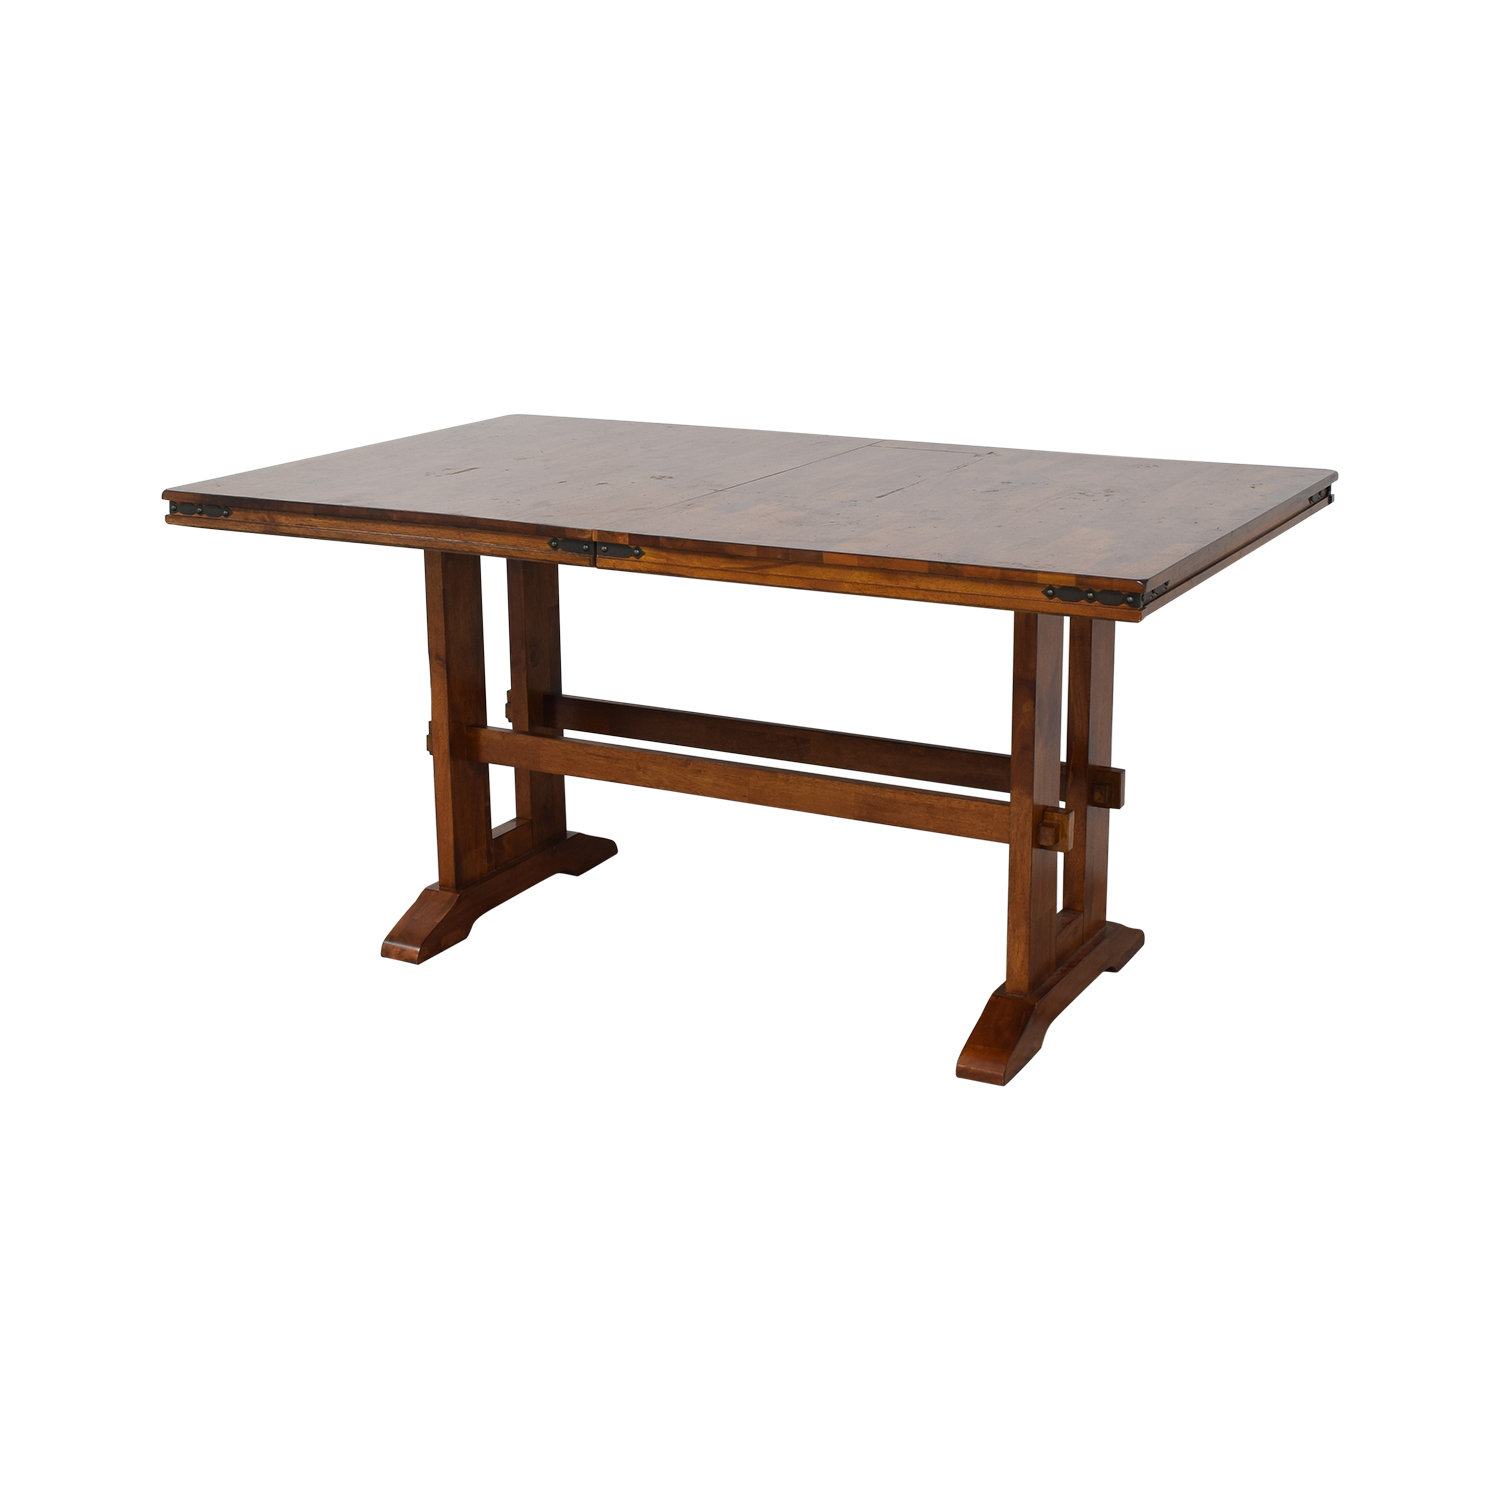 Lenox Lenox Extendable Dining Table discount